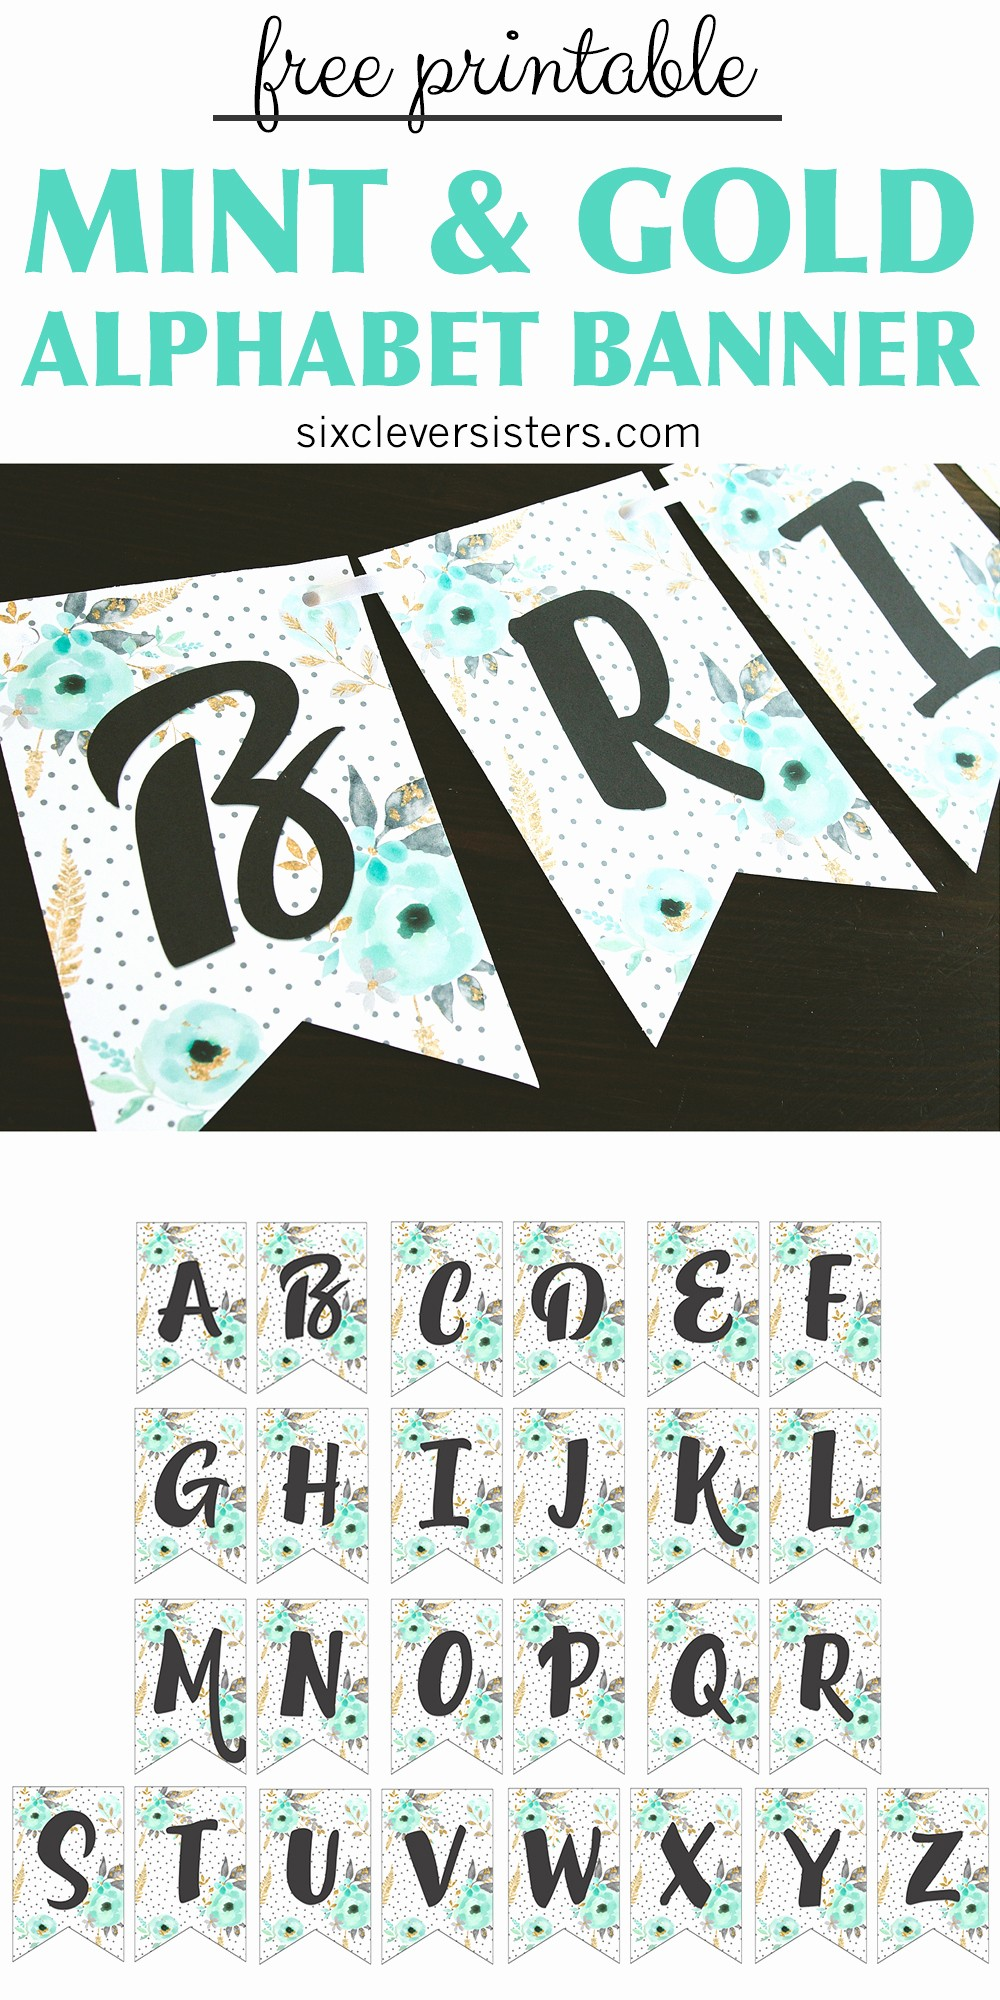 How to Make Banner Letters Best Of Free Printable Alphabet Banner Mint& Gold Six Clever